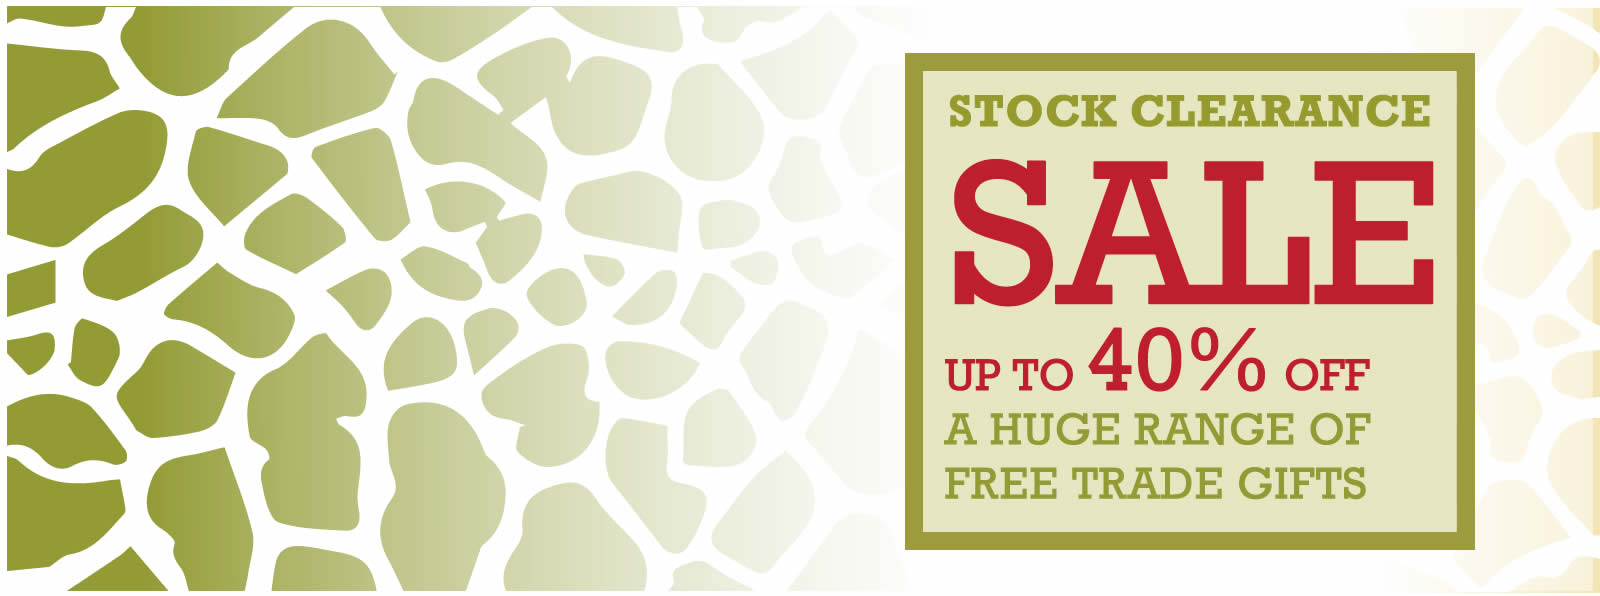 stock clearance fair trade gifts